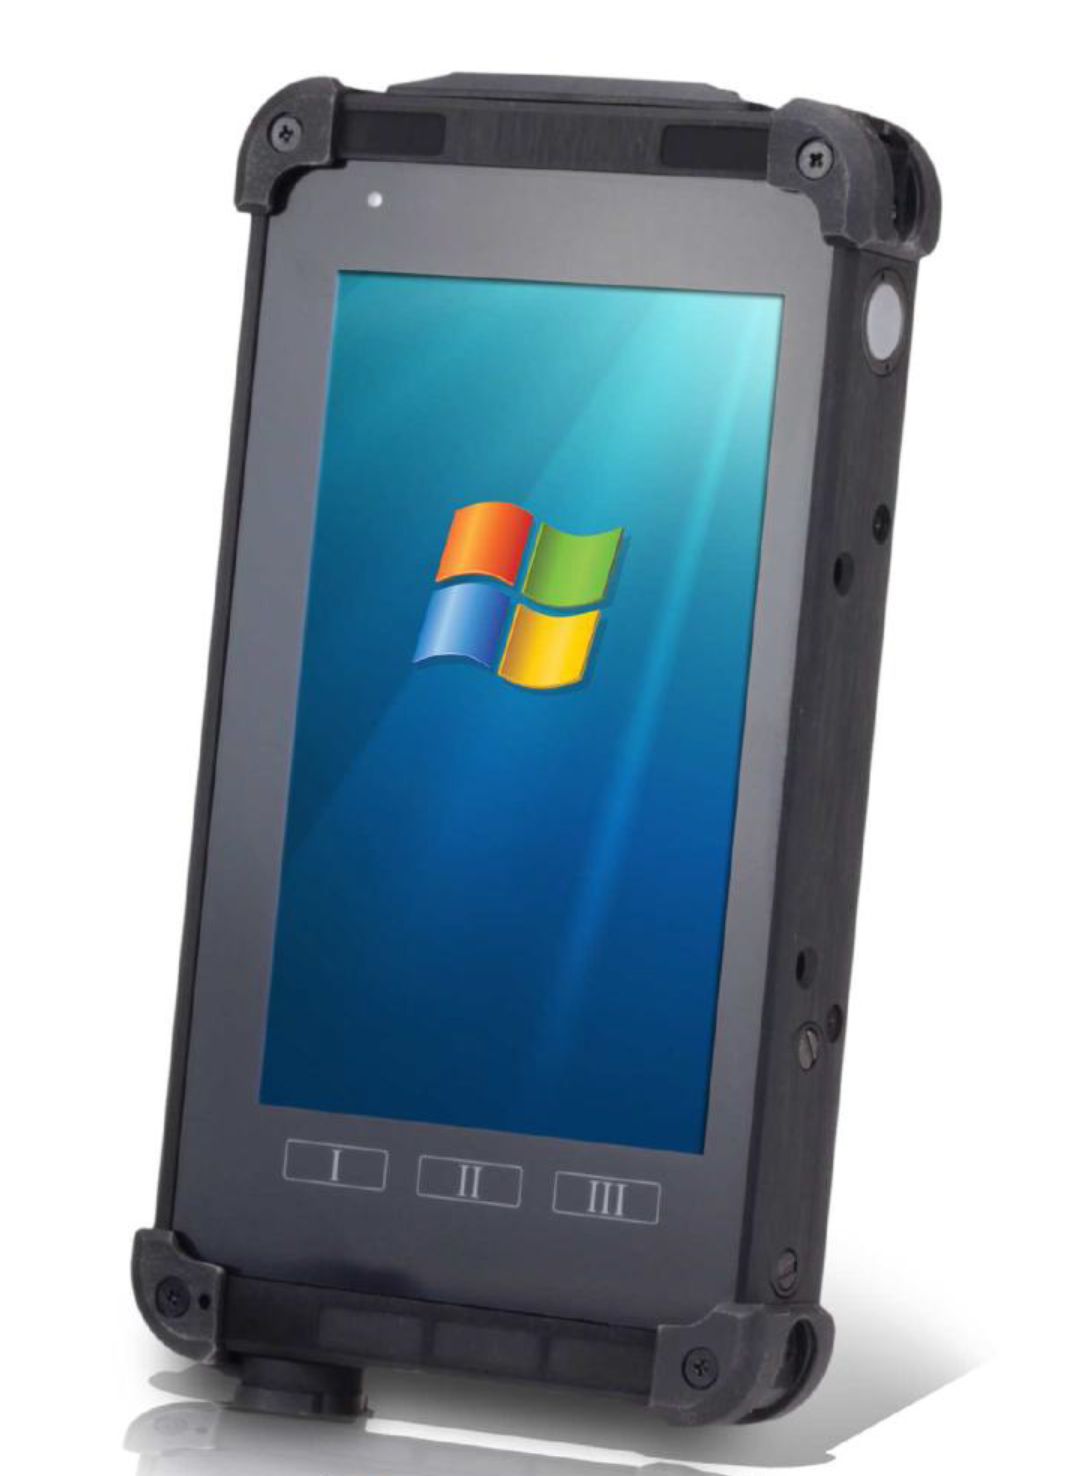 Mediatek rugged computer systems